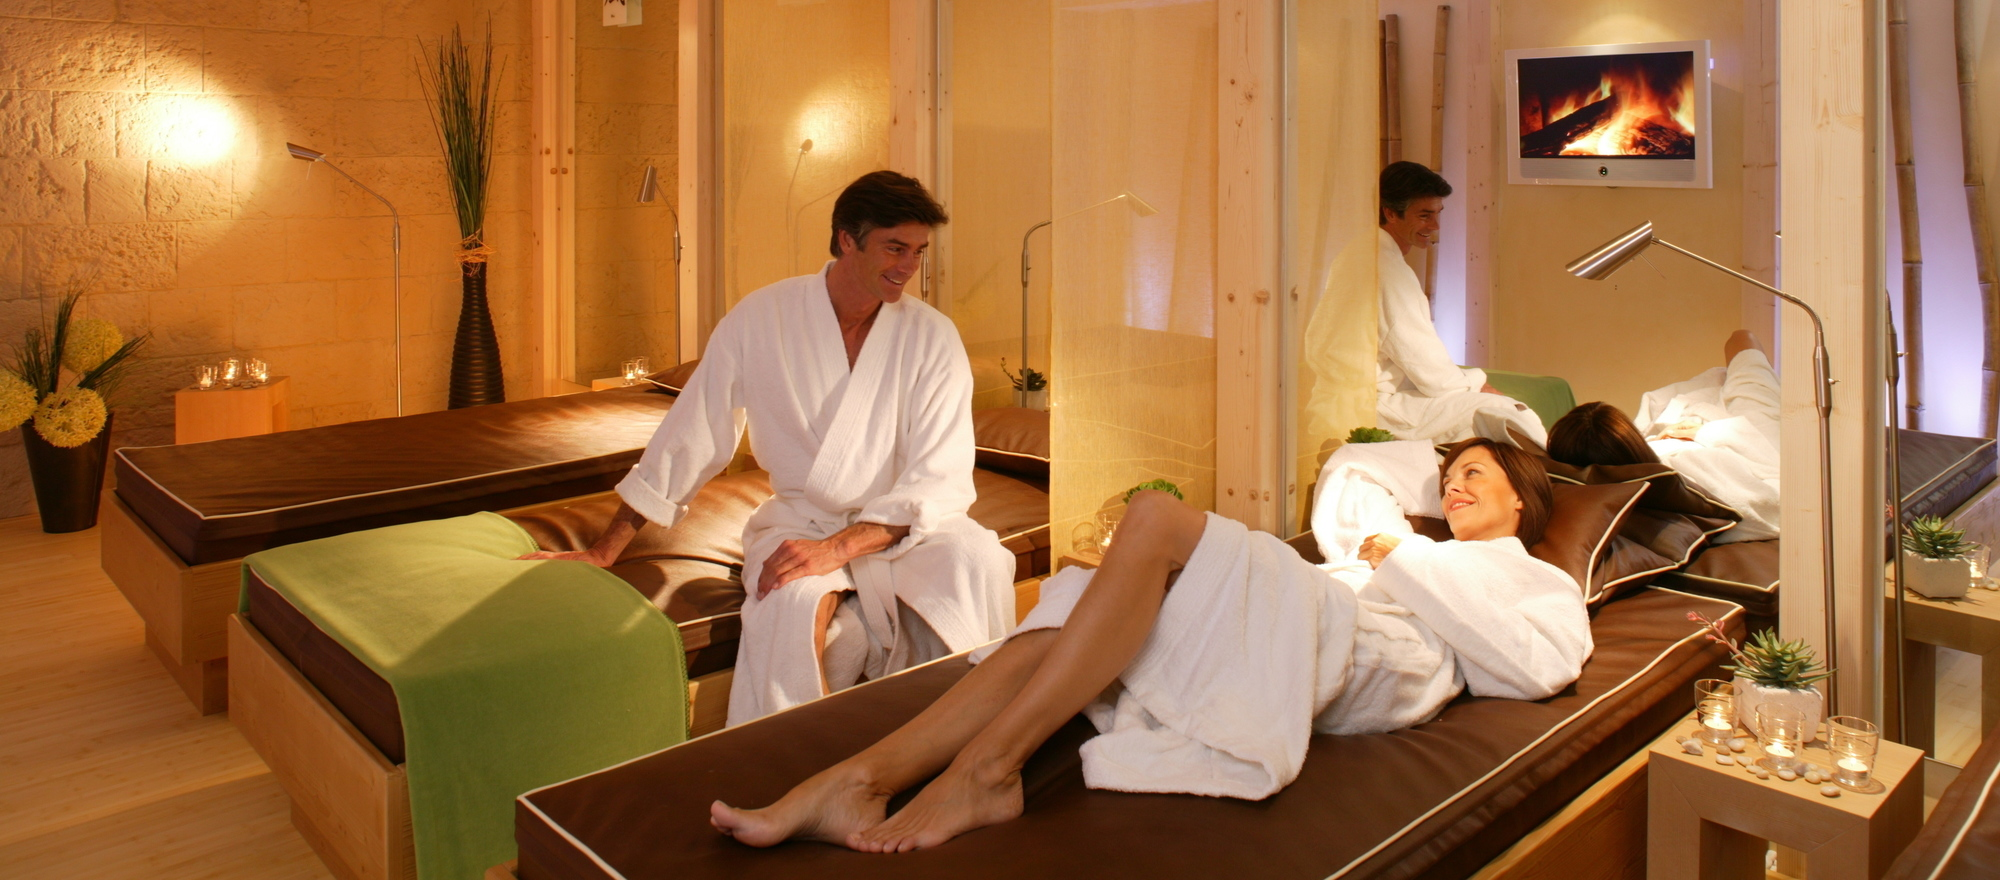 Spa oasis in the the Ringhotel Die Gams in Beilngries, 4 star hotel in Upper Bavaria